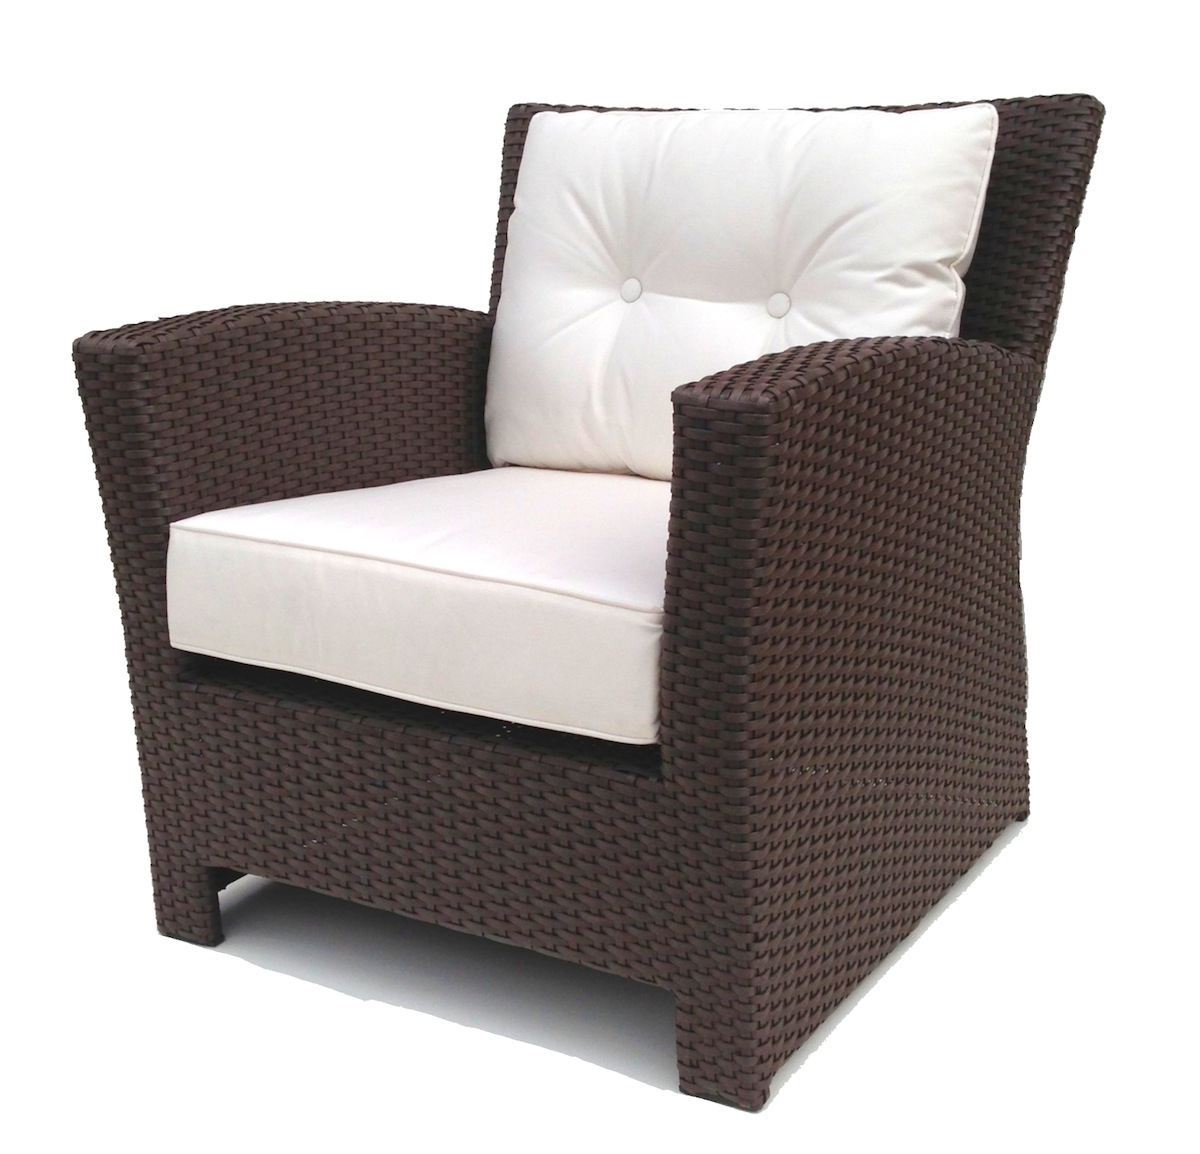 Rattan Outdoor Chairs Outdoor Wicker Club Chair